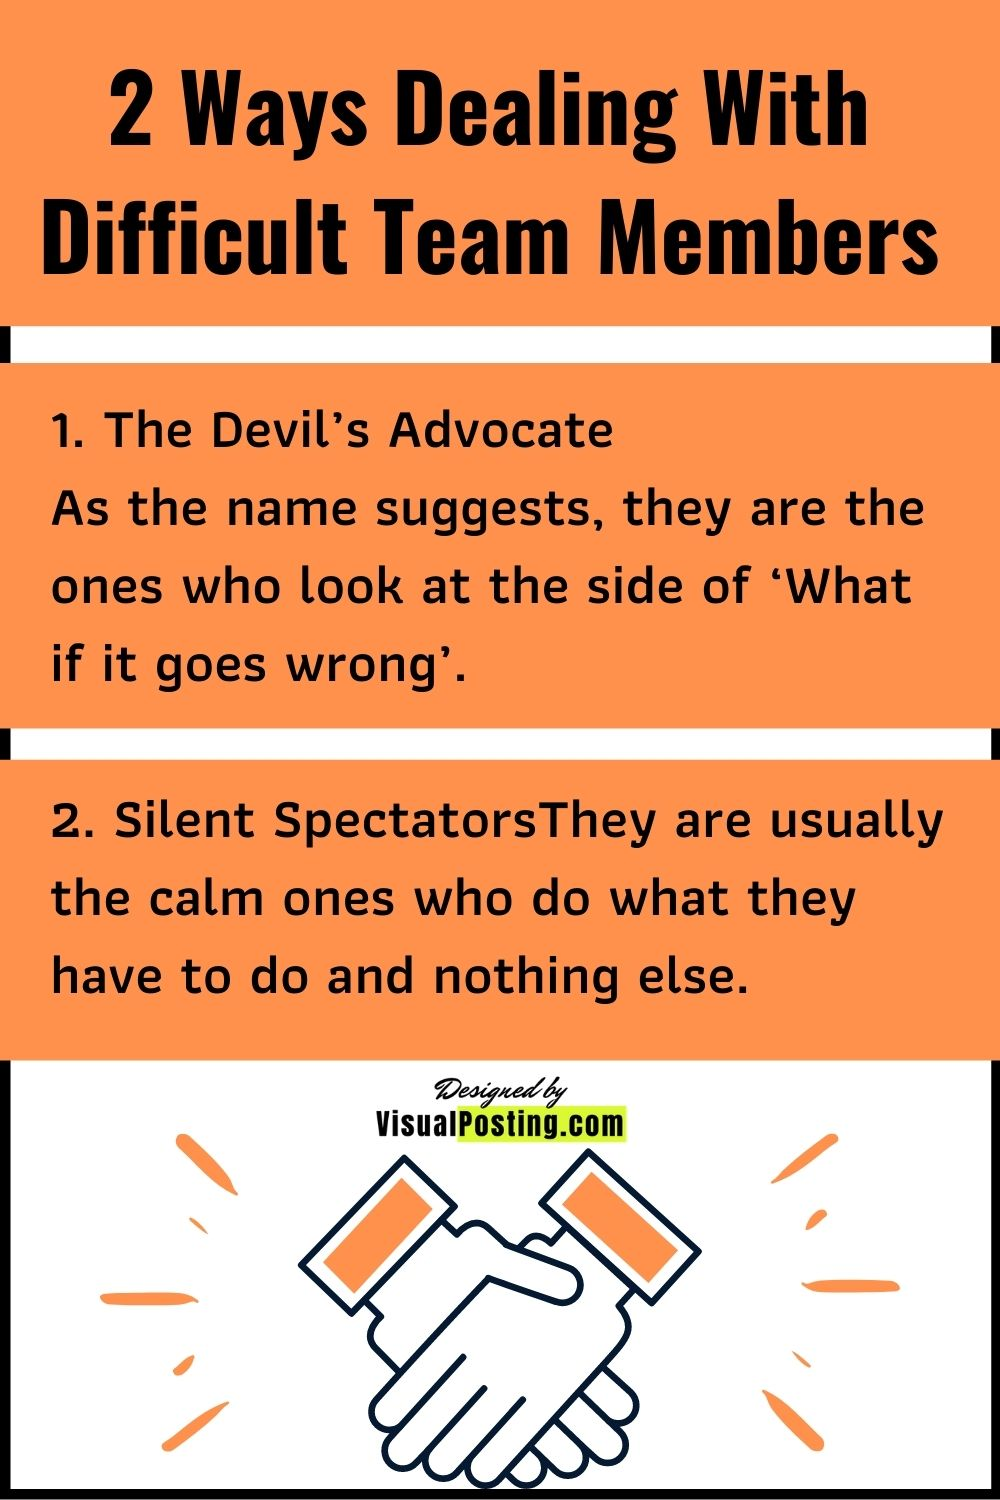 2 Ways Dealing With Difficult Team Members.jpg